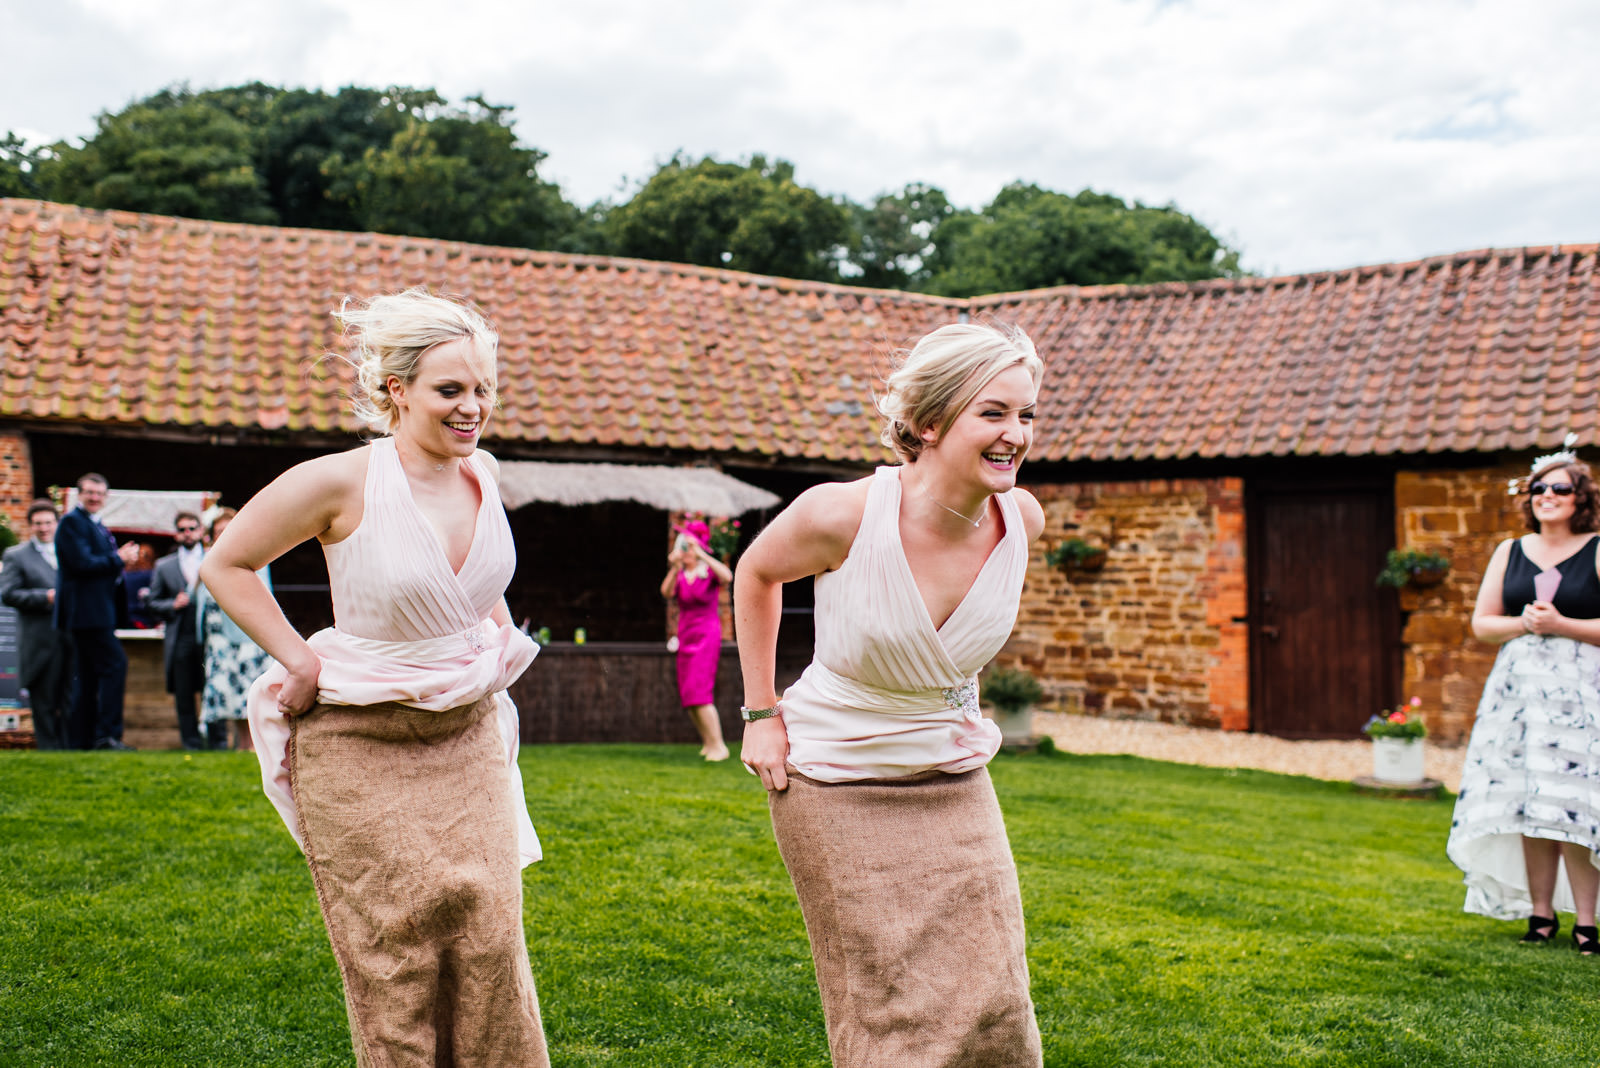 Bridesmaid having a sack race